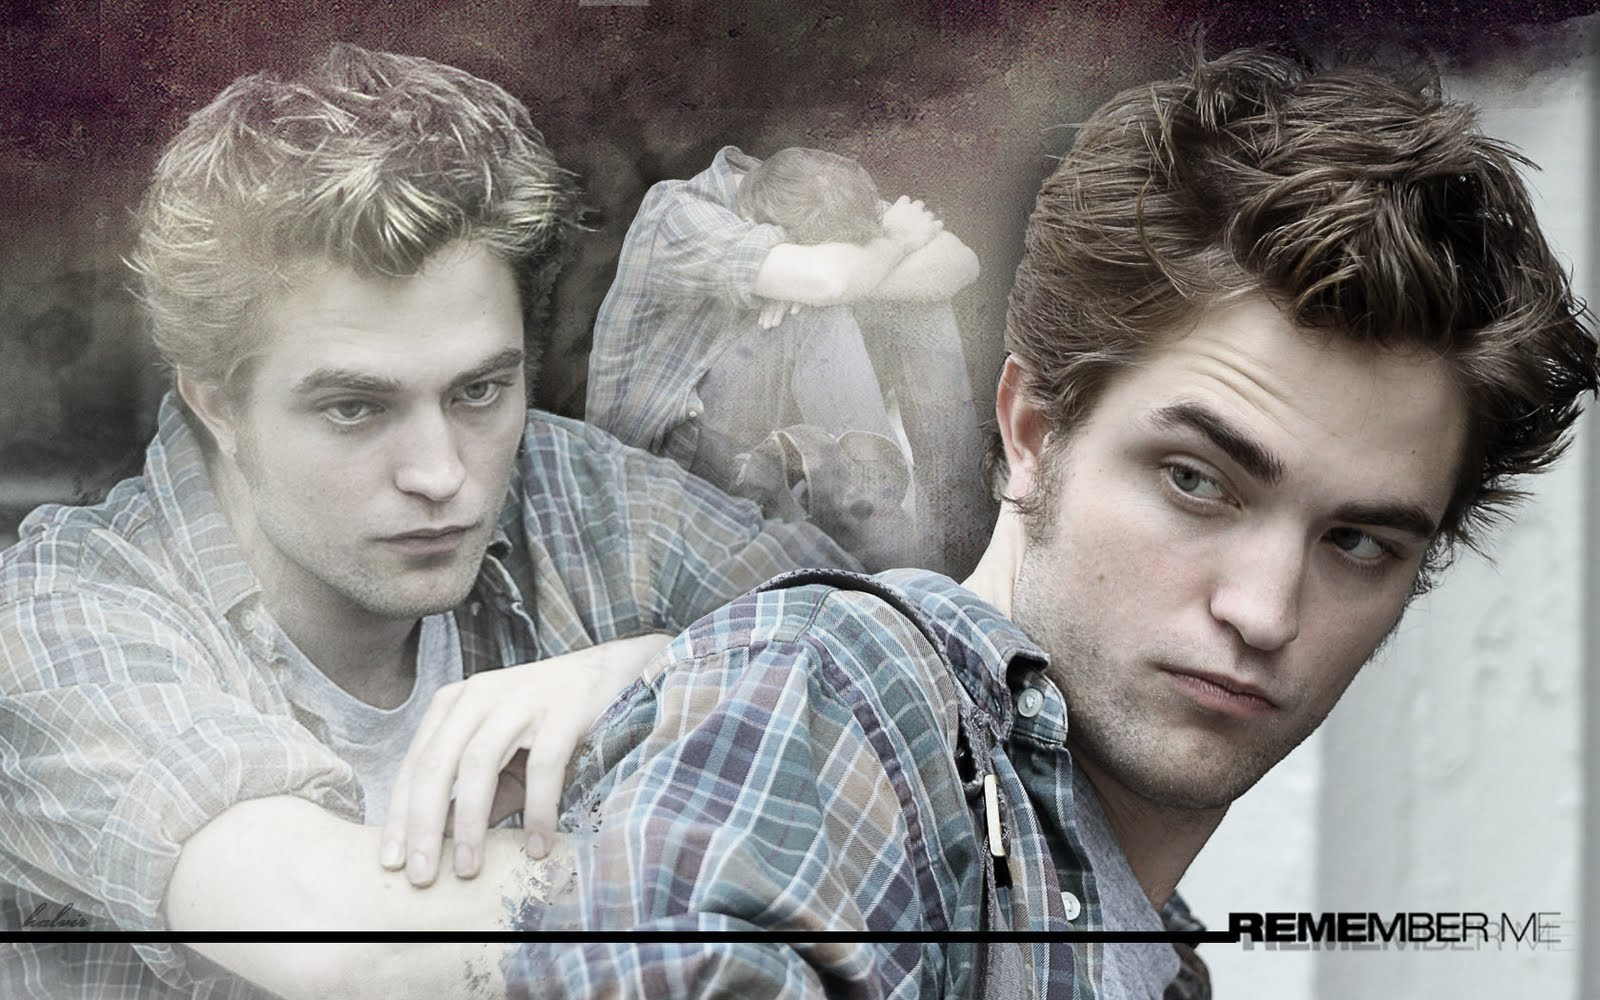 http://4.bp.blogspot.com/_uQj_n5YnUsg/TIU_AfLTLXI/AAAAAAAAE8k/3JFj944JylQ/s1600/remember-me-wallpaper-robert-pattinson-7889711-1680-1050.jpg